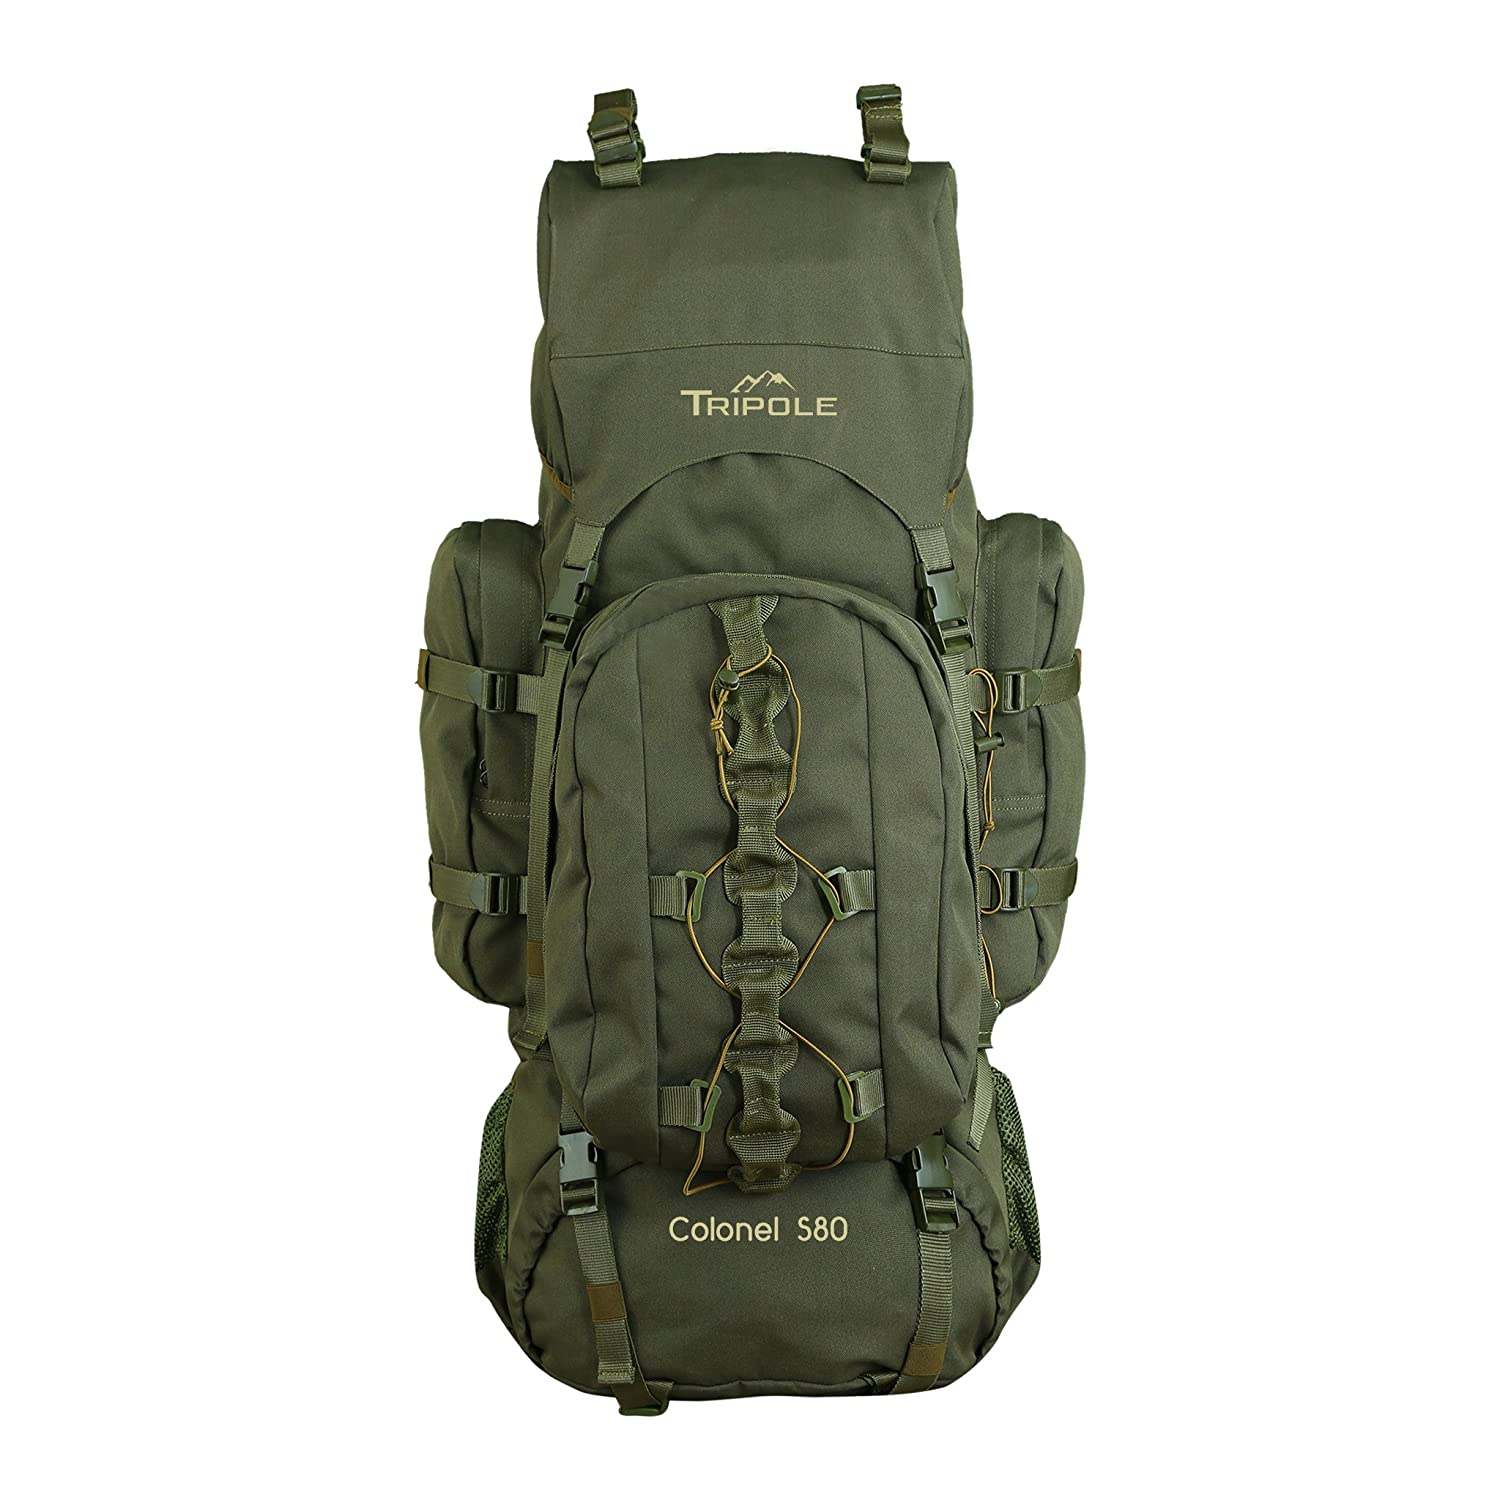 Tripole, Colonel 80 litres Rucksack + Detachable Day Pack, Army Green Rucksacks & Hiking Trekking Bags in India